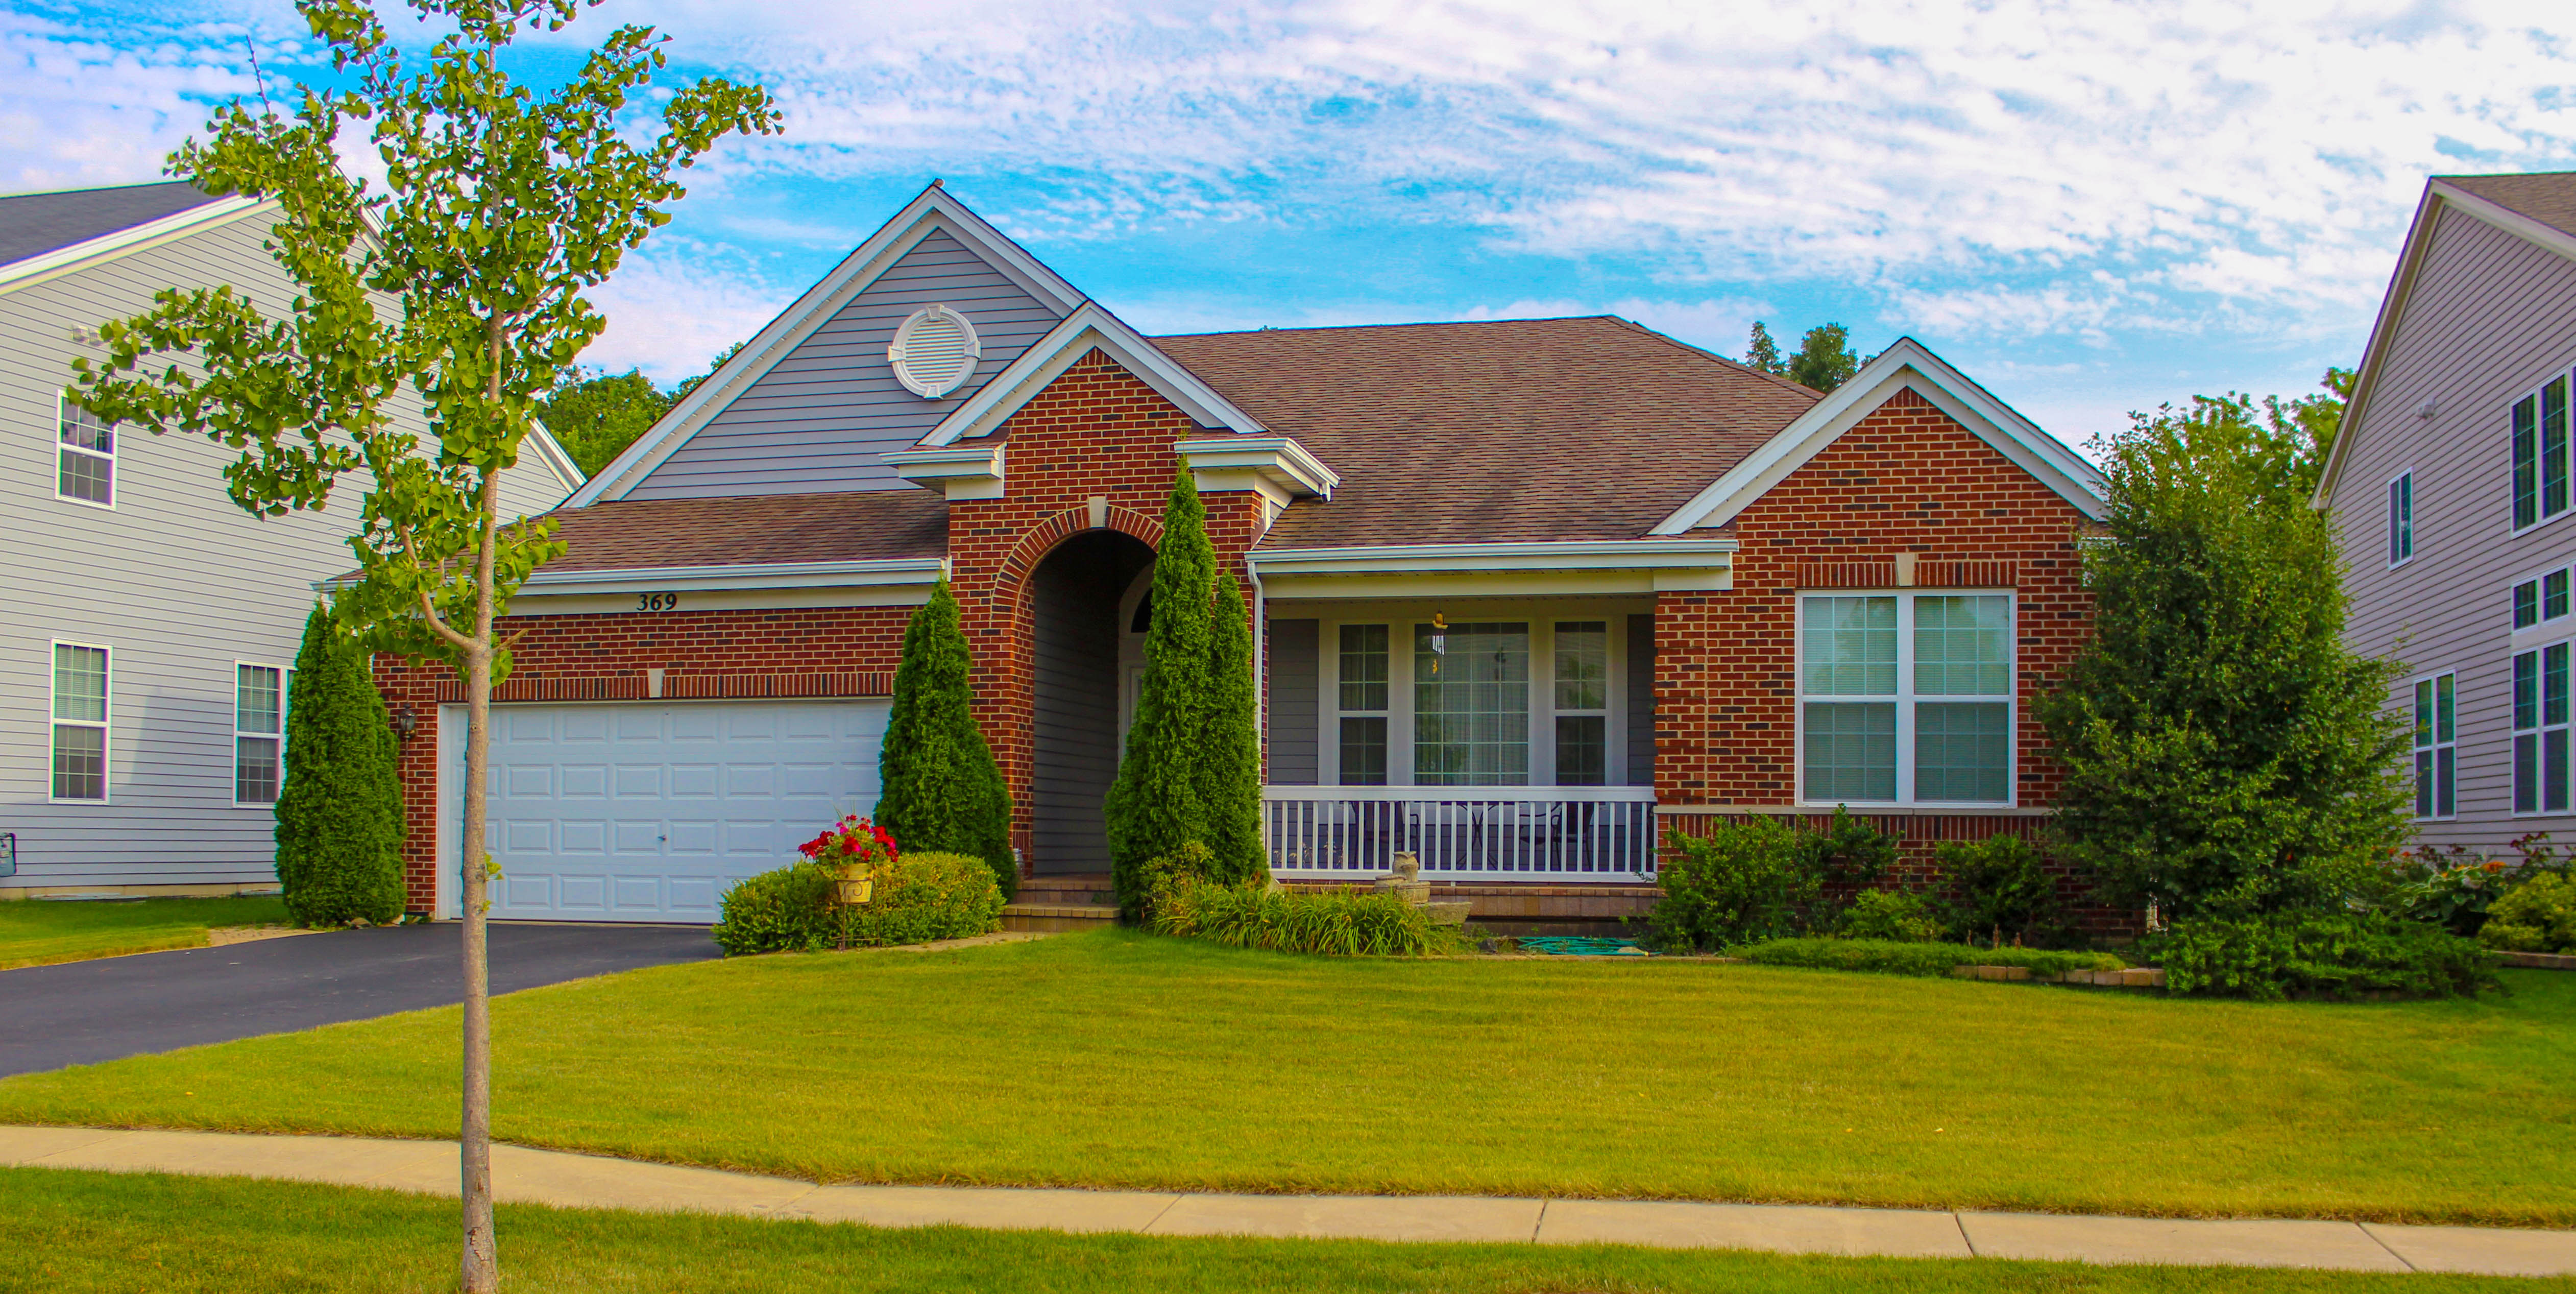 Homes for Sale in Sterling Ridge Subdivision in Cary IL